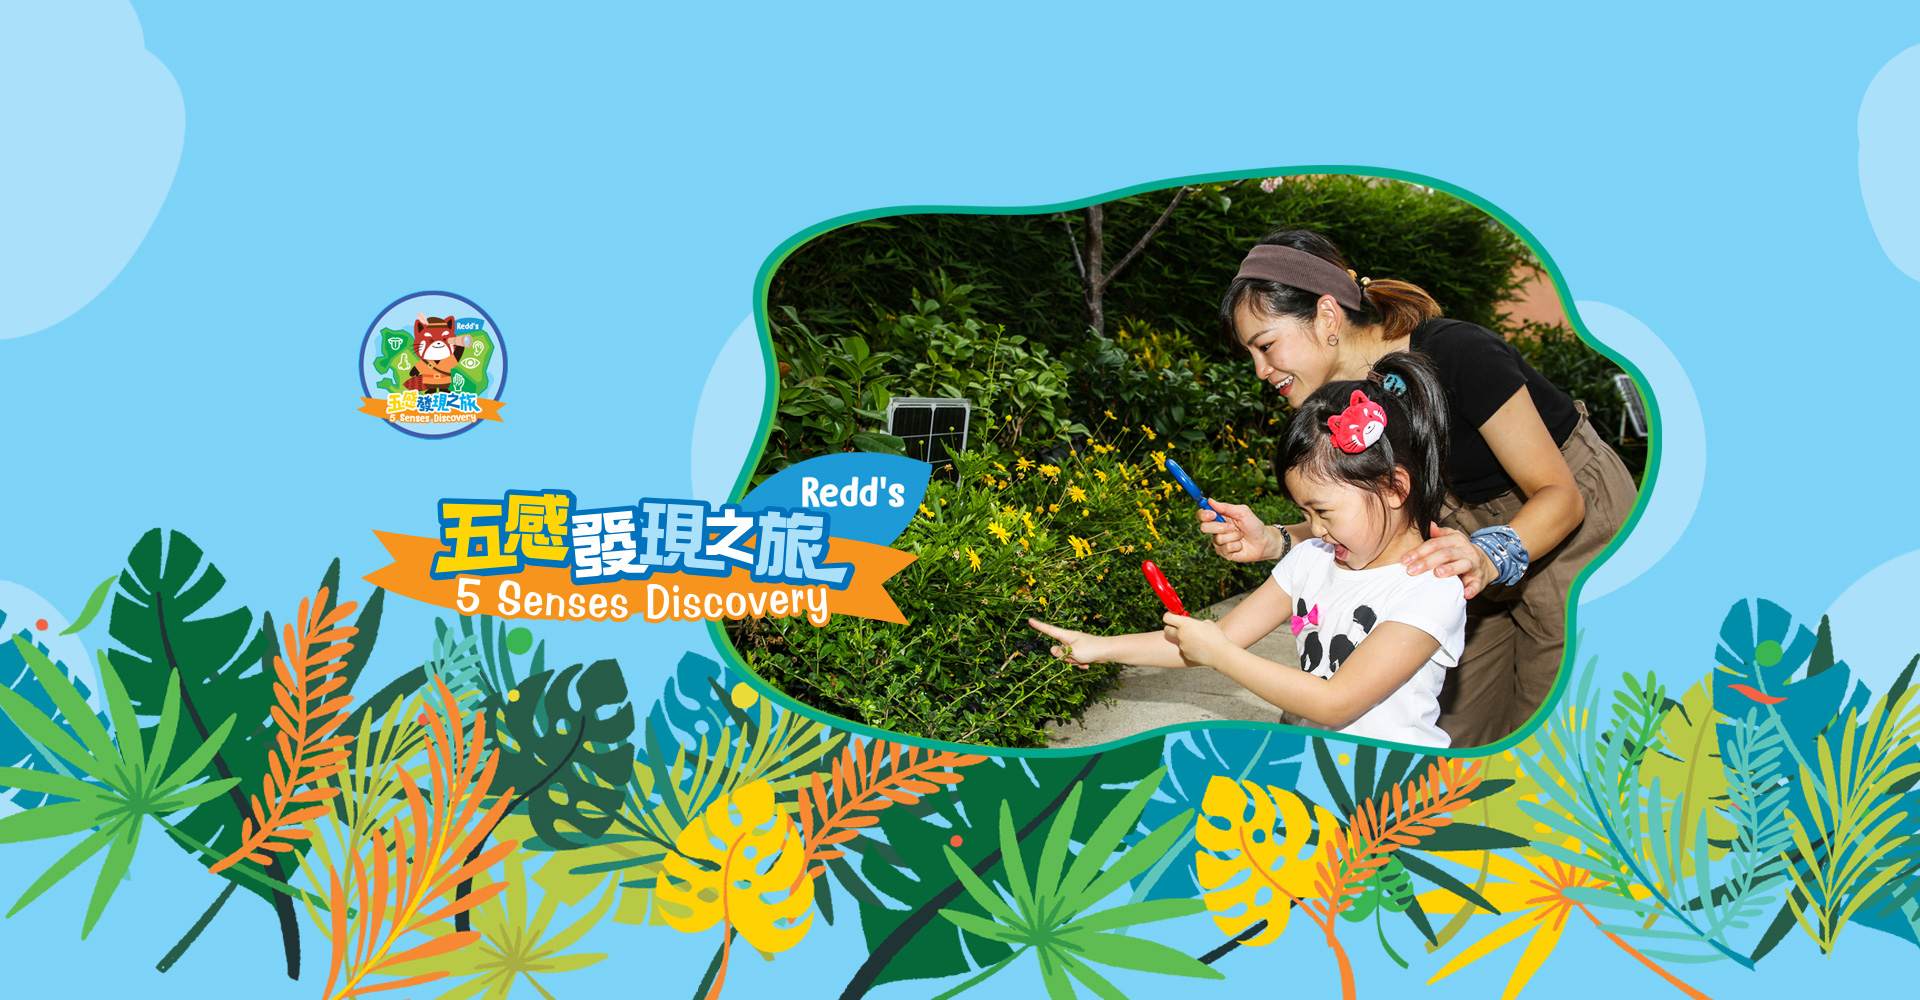 https://media.oceanpark.com.hk/files/s3fs-public/inside_desktop_banner_en.jpg